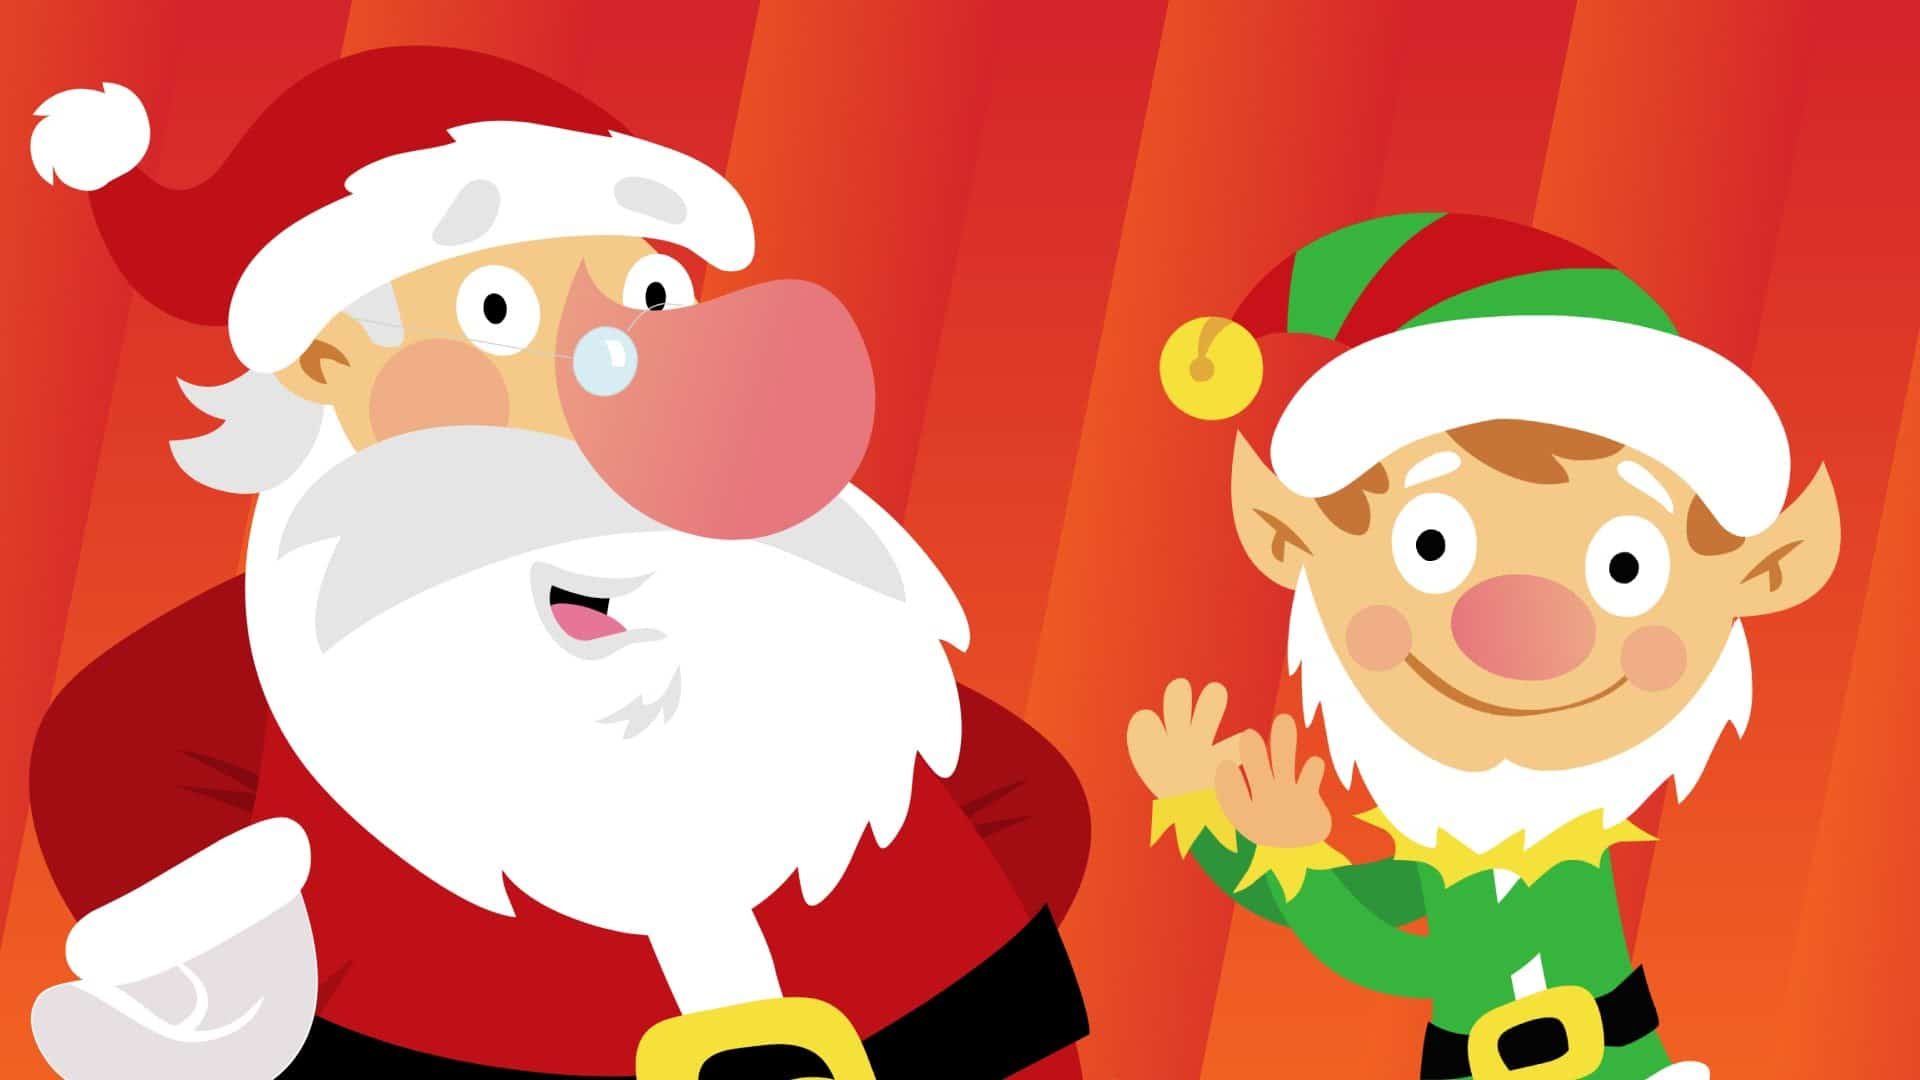 s a n t a super simple songs place 4 kids - Super Simple Christmas Songs